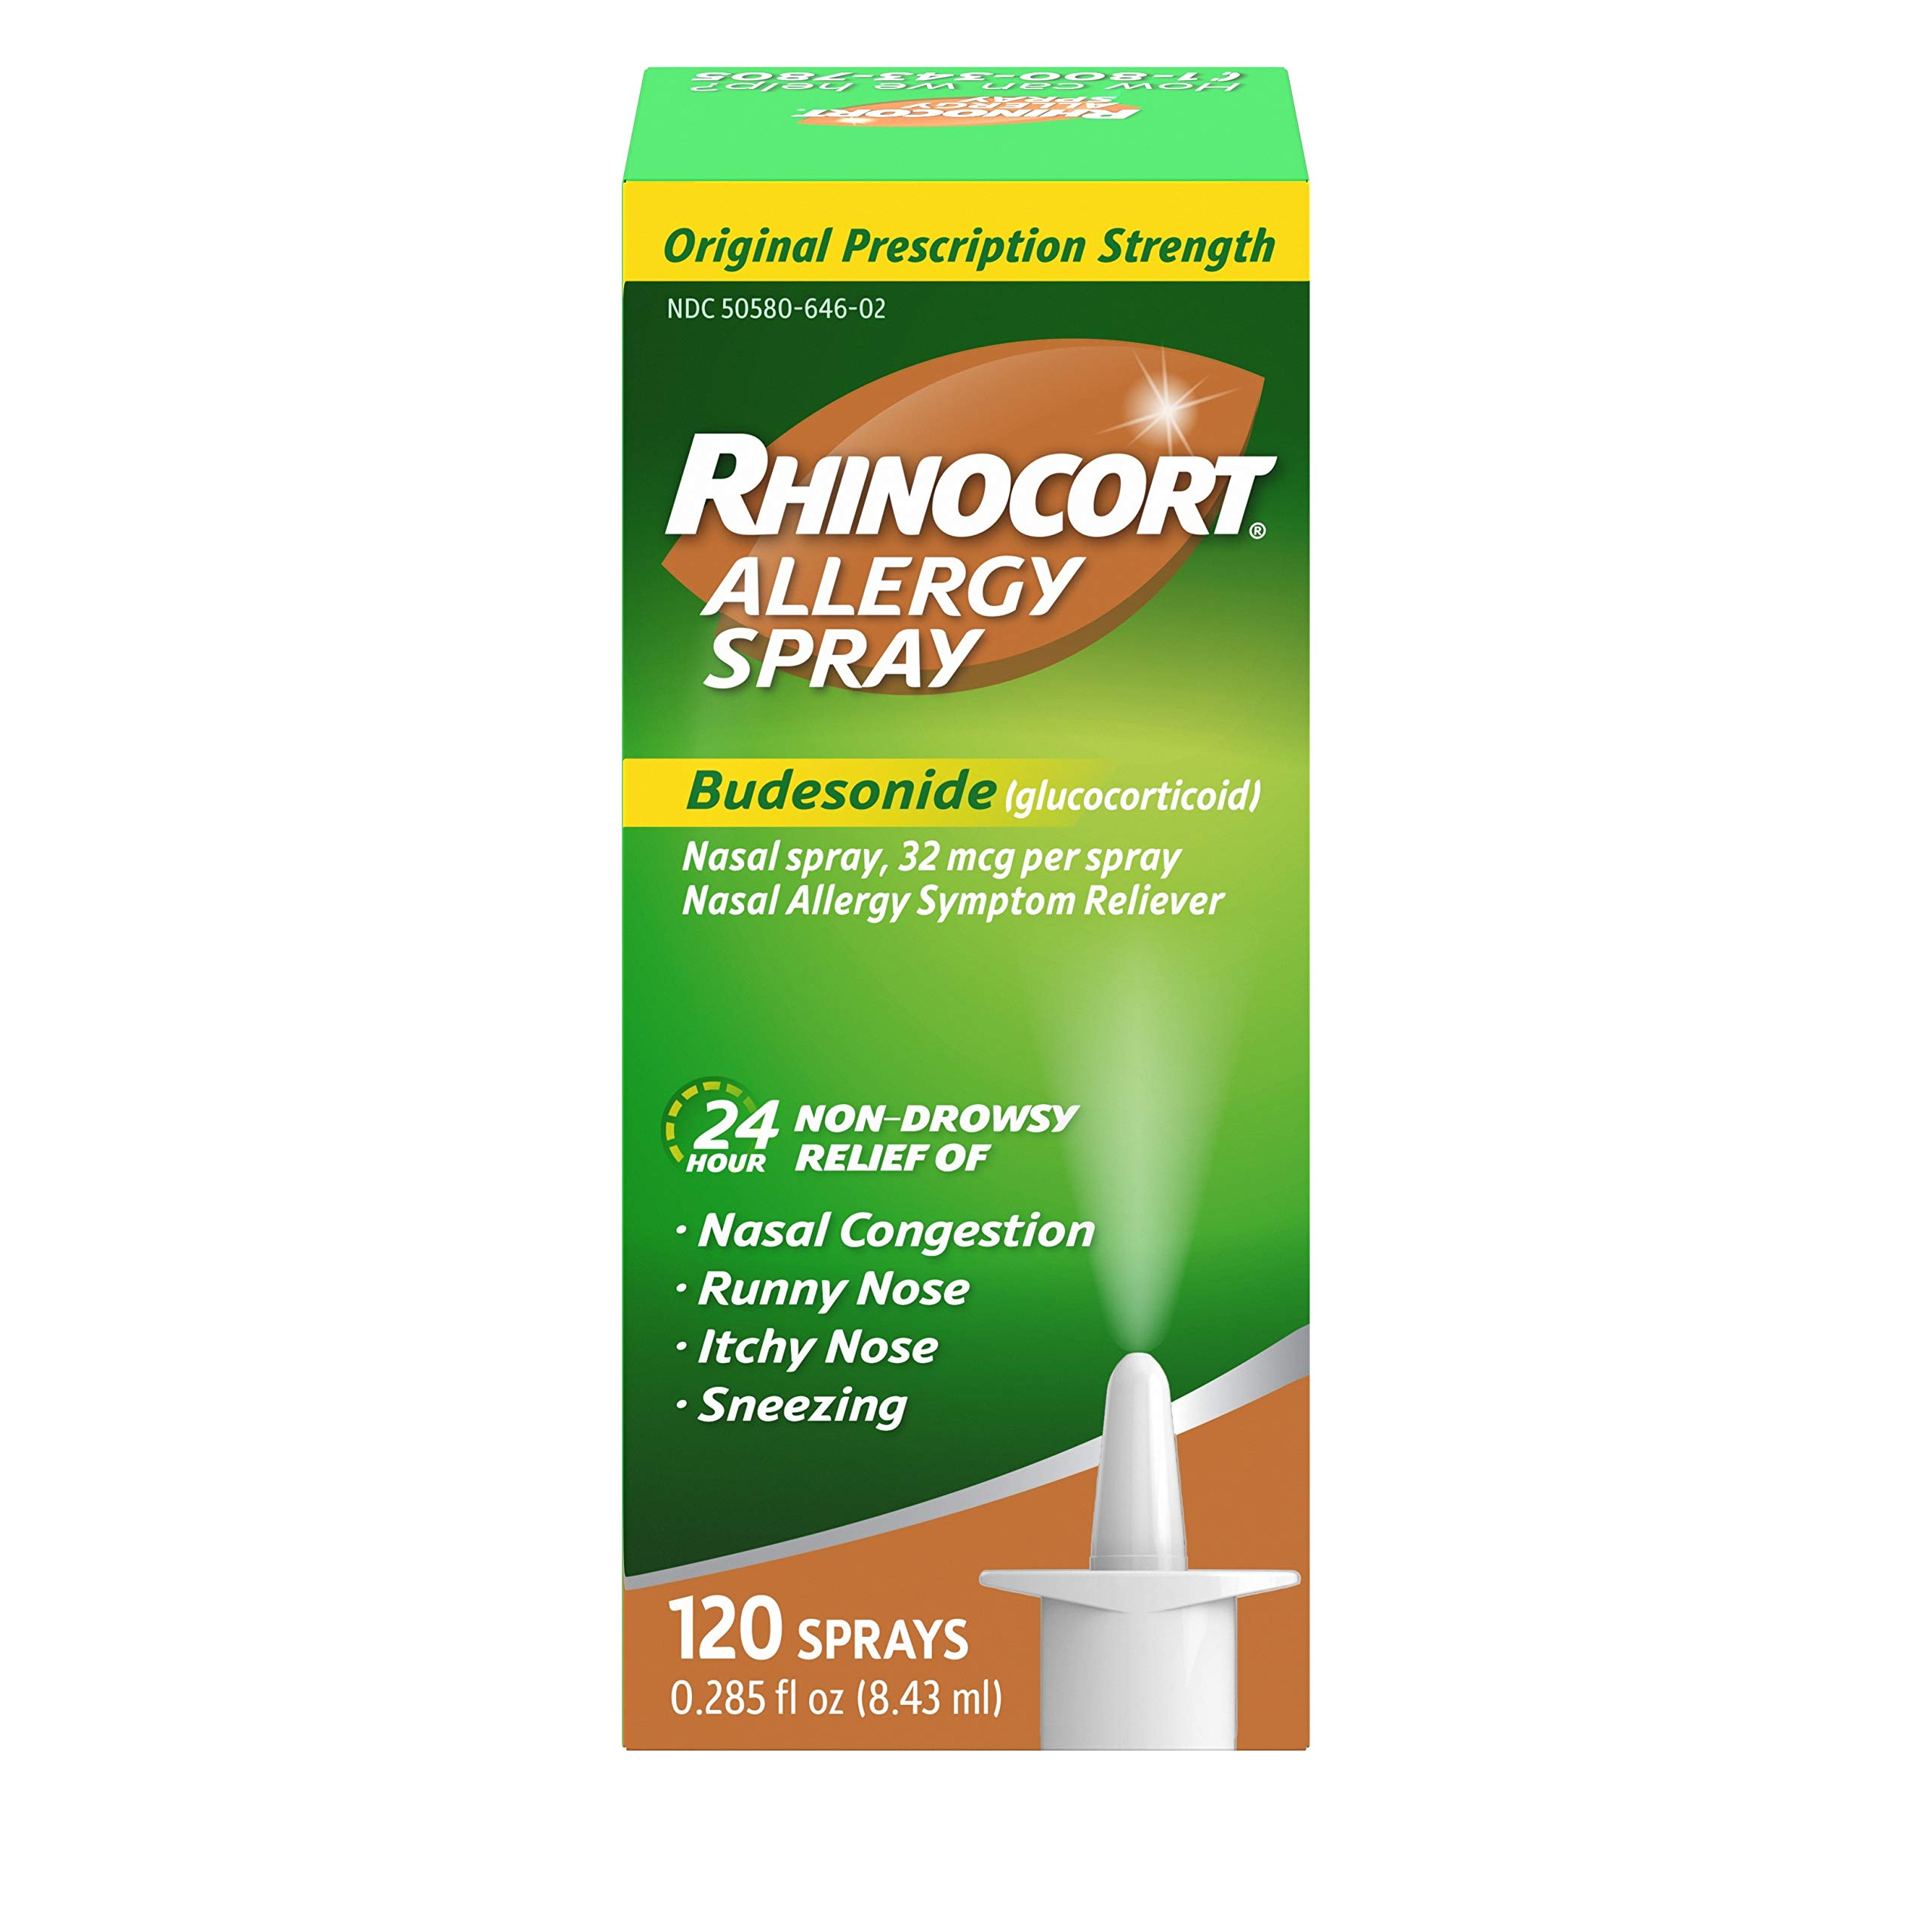 Rhinocort Allergy Nasal Spray with Budesonide Allergy Medicine, Non-Drowsy 24 Hour Relief, Prescription Strength Indoor and Outdoor Allergy Relief, Scent-Free and Alcohol-Free, 120 Sprays by rhinocort